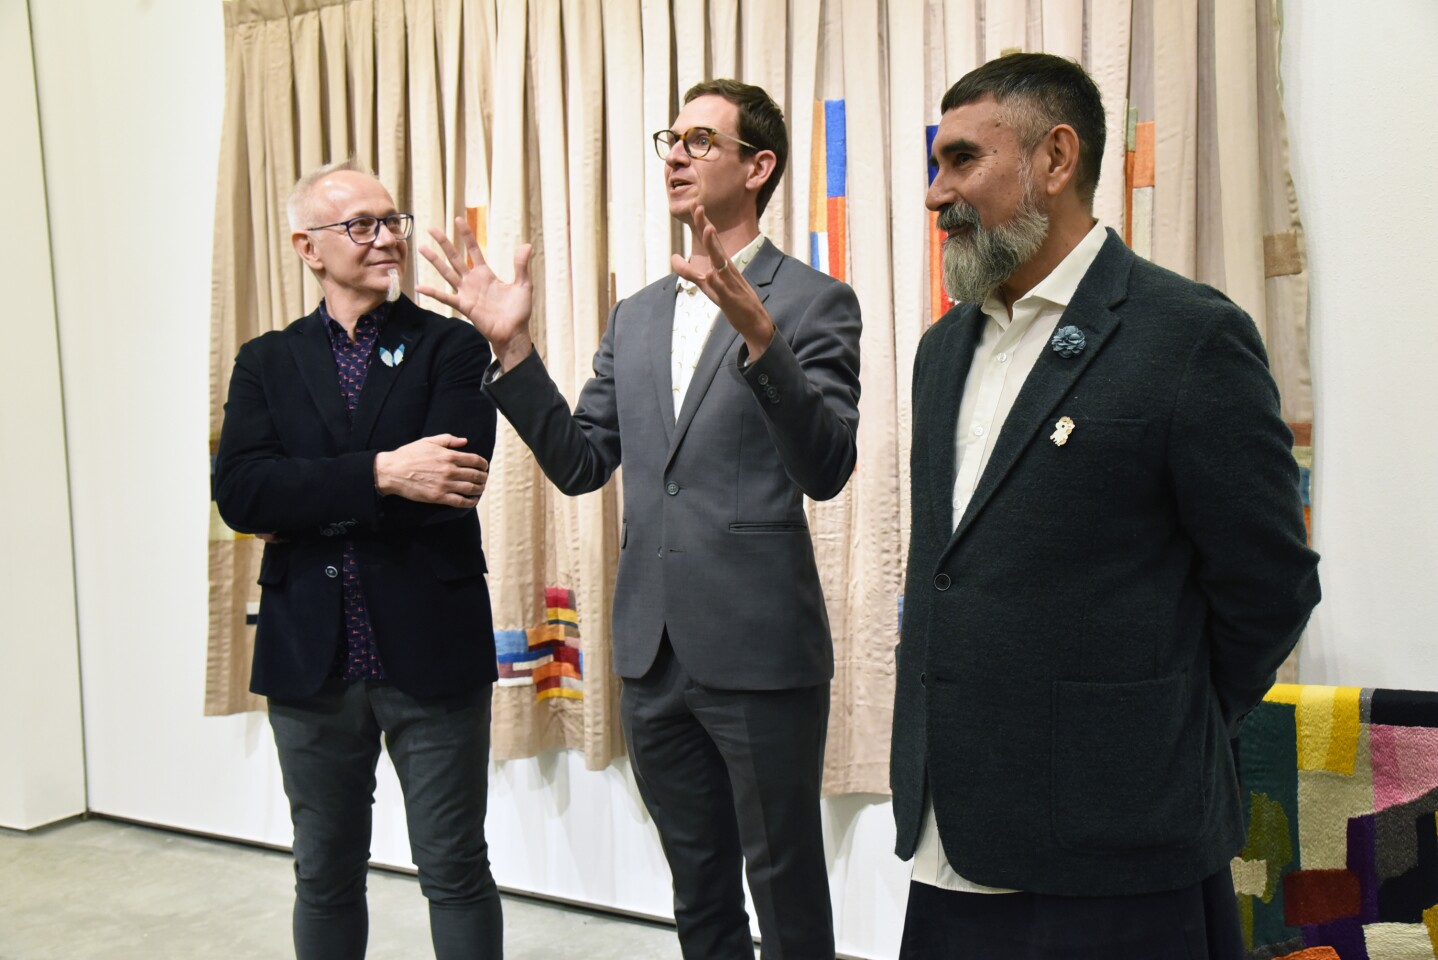 Lux Executive Director Andrew Utt (center) welcomes artists-in-residence Daniel Giannone and Leo Chiachio